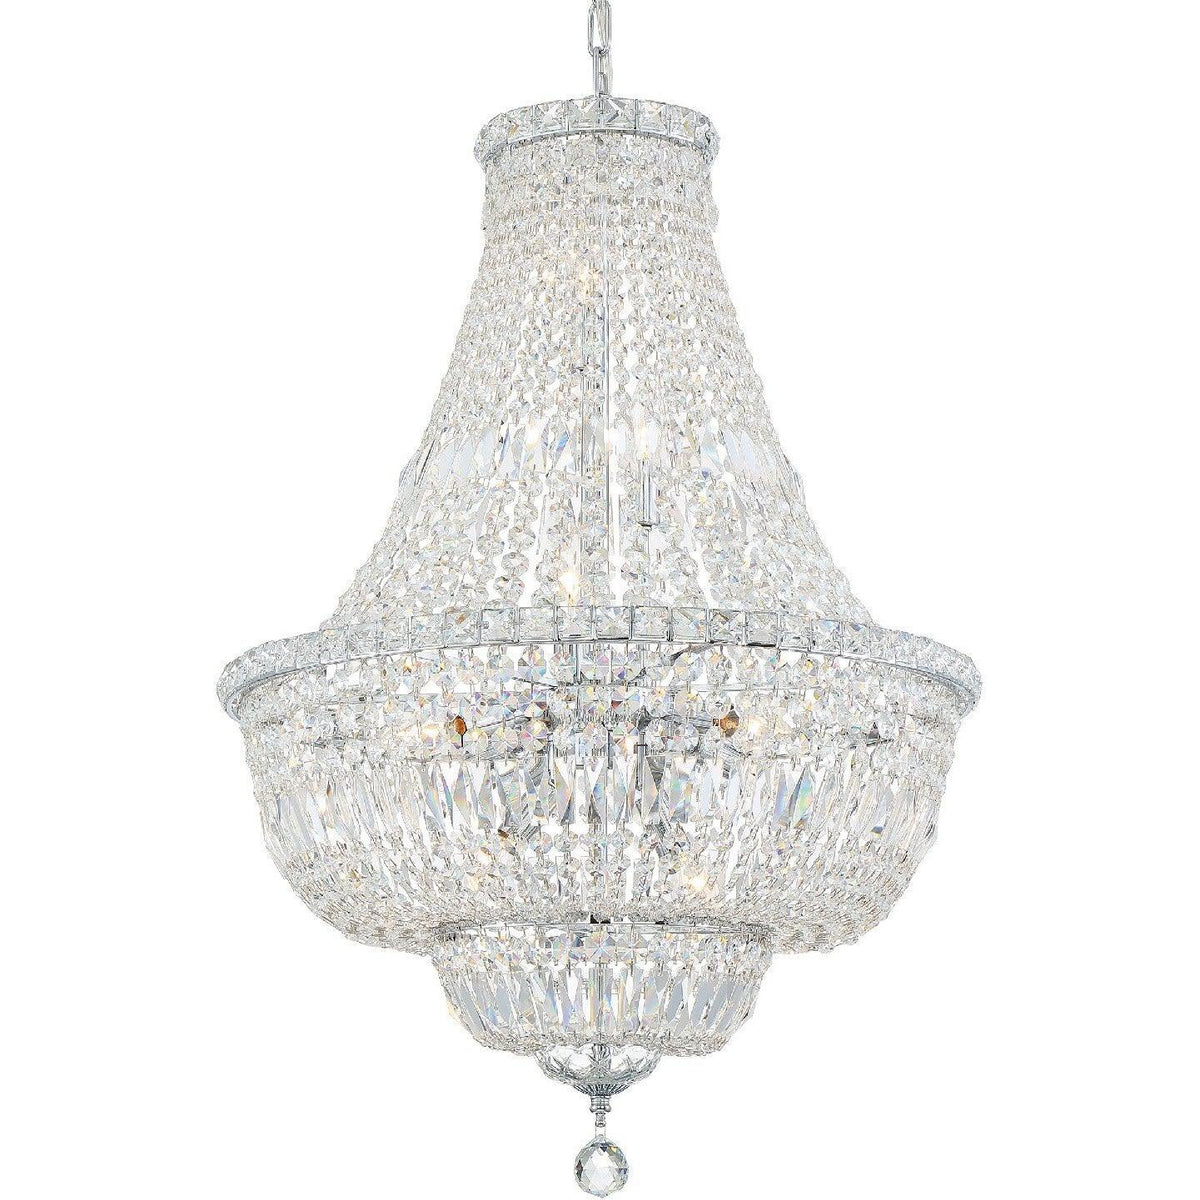 Crystorama - ROS-A1009-CH-CL-MWP - Nine Light Chandelier - Rosyln - Polished Chrome